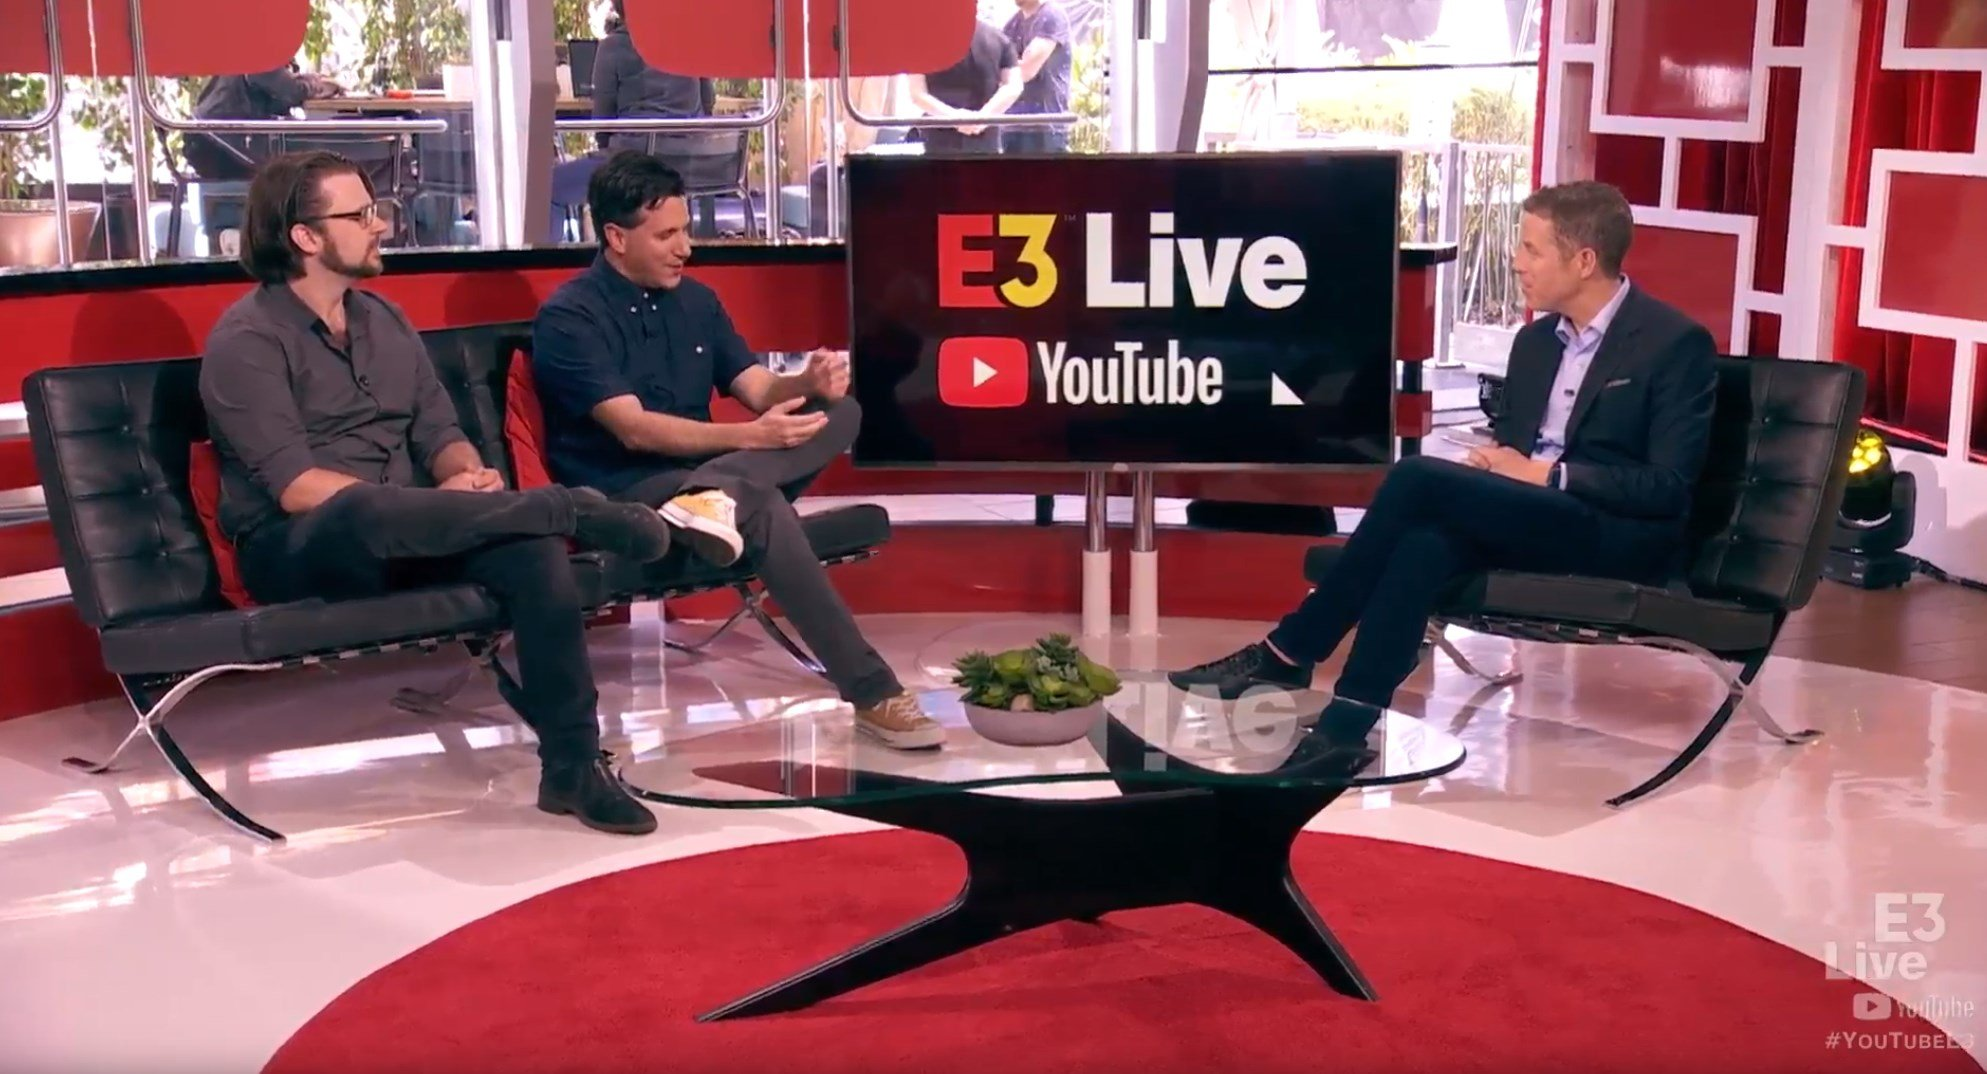 Watch the Youtube E3 2019 live stream here